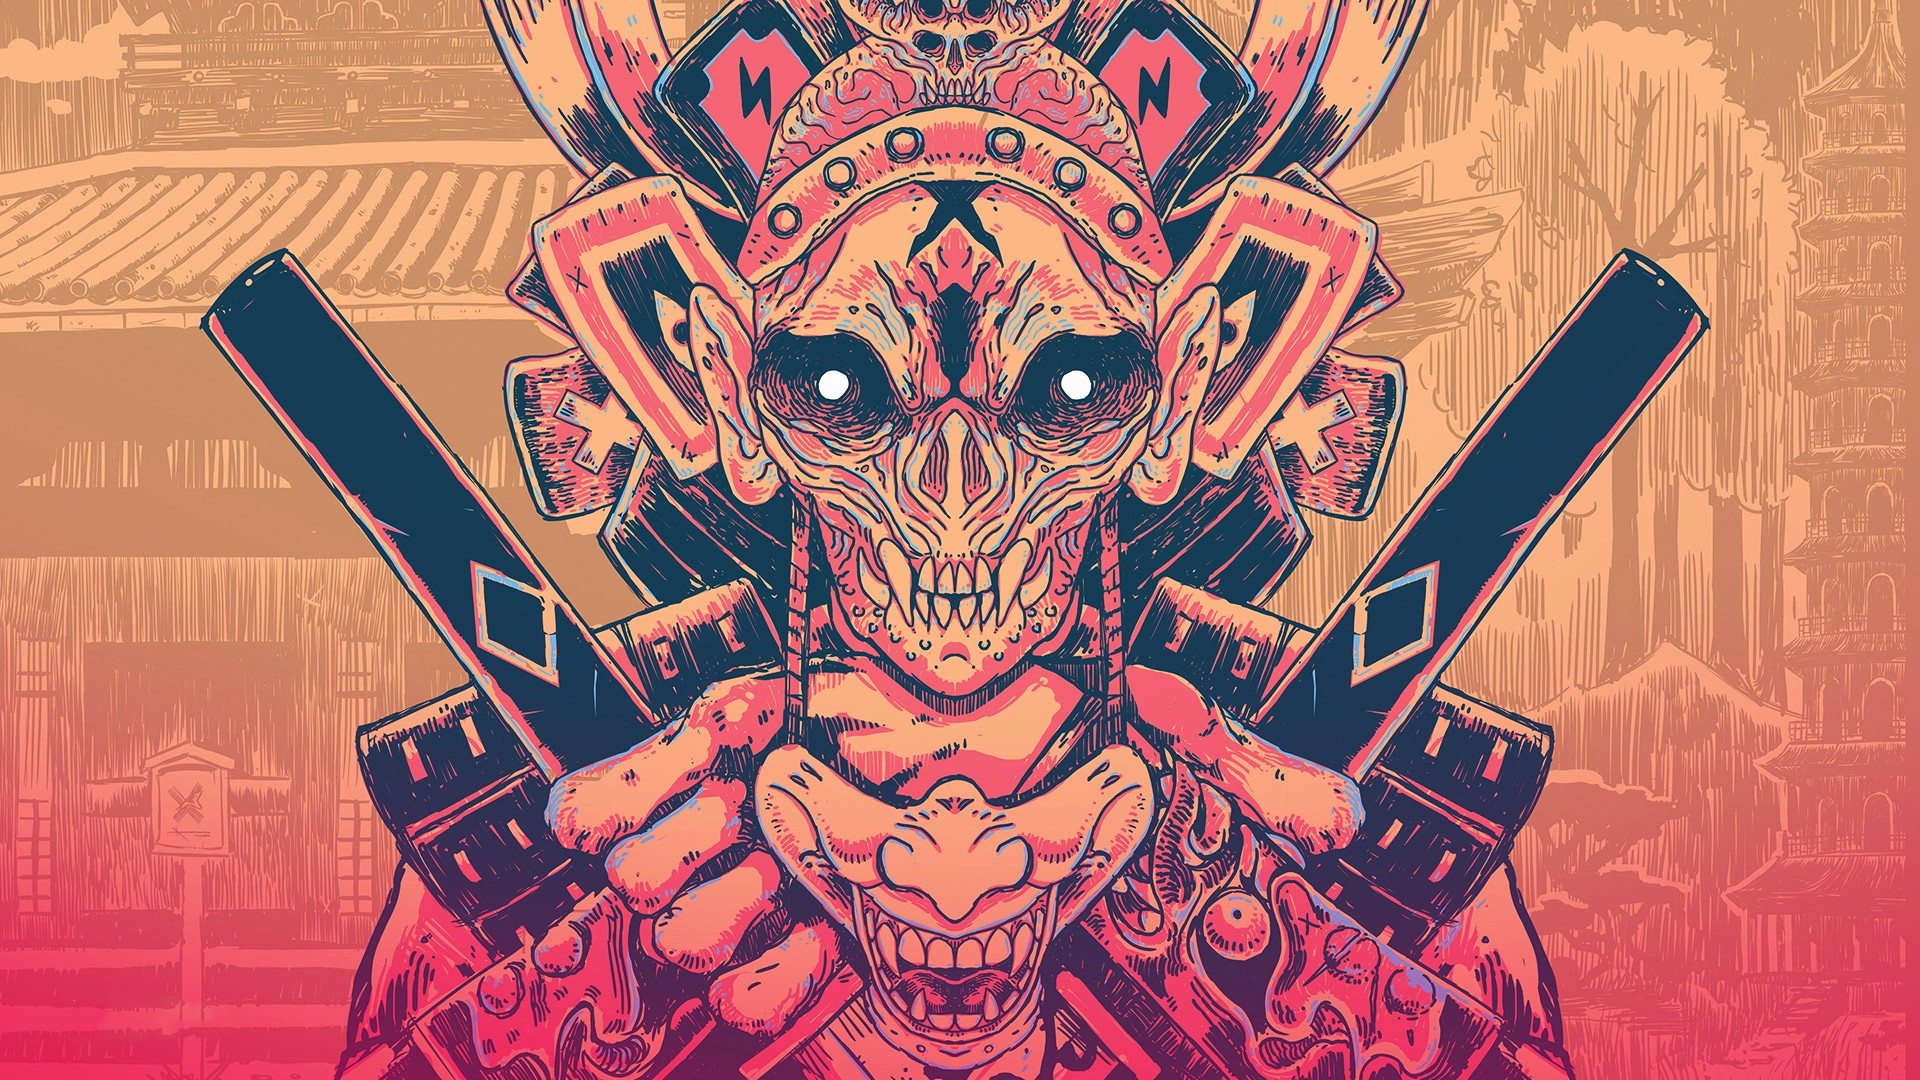 General 1920x1080 digital art samurai mask picture artwork beige pink demon skull